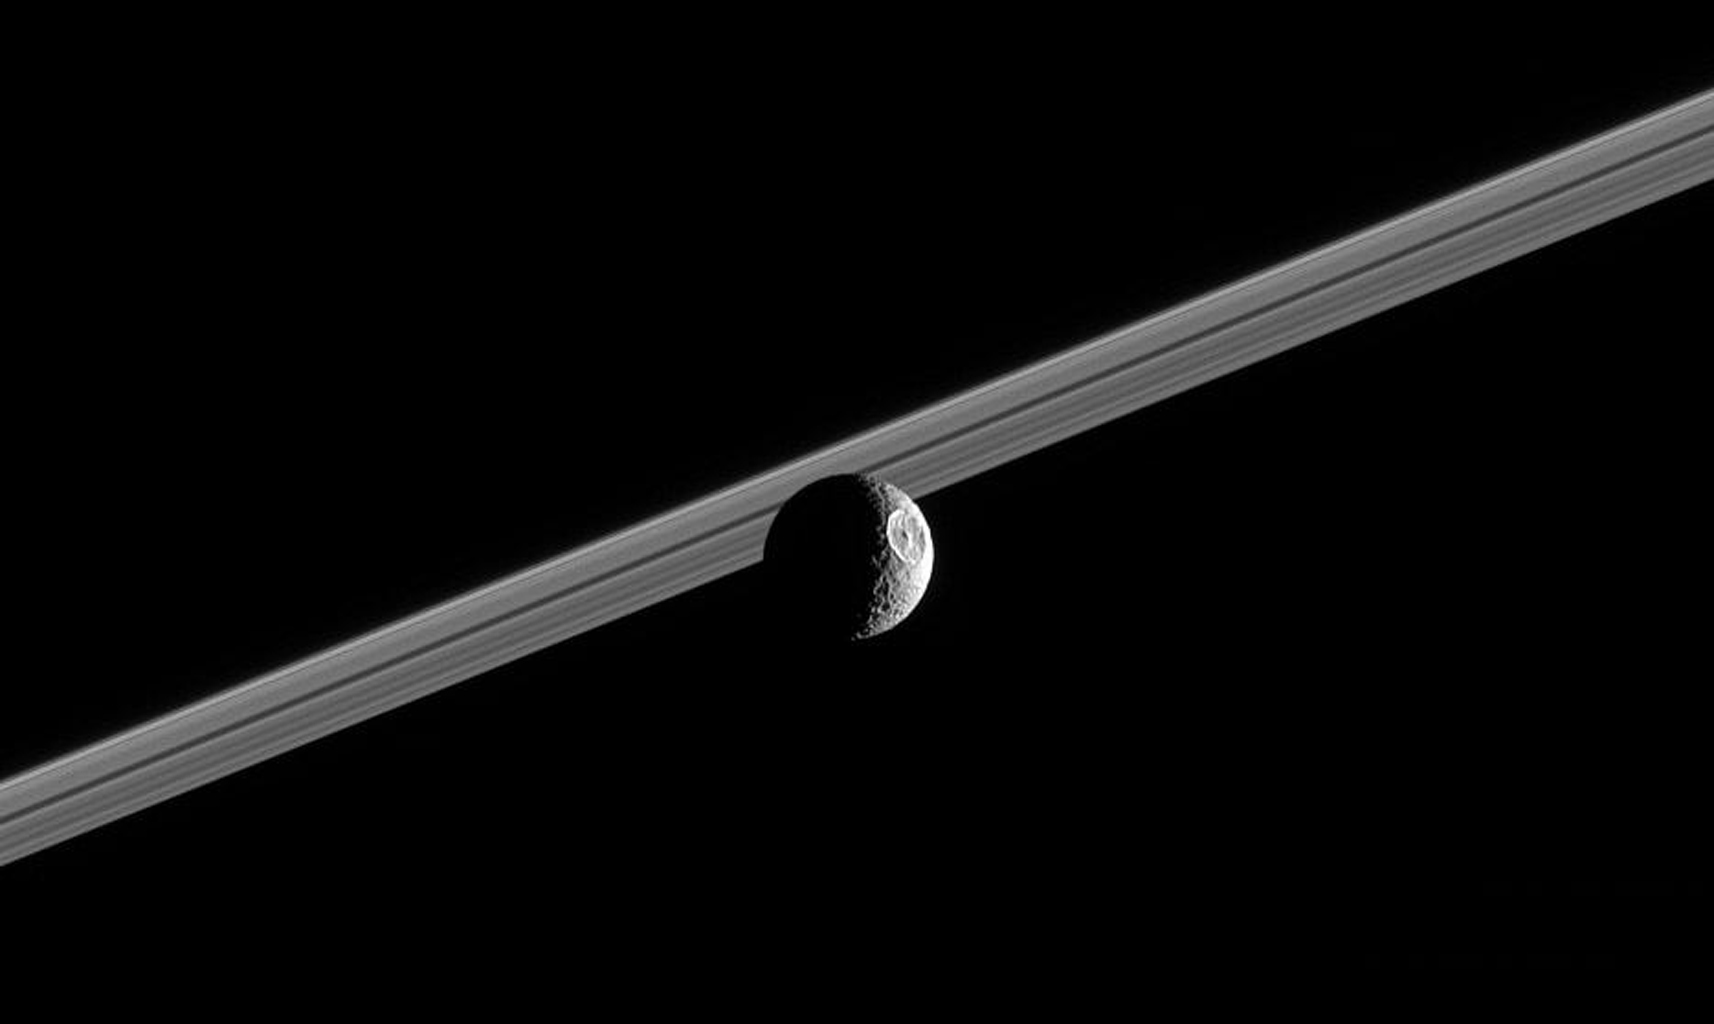 Impact-battered Mimas steps in front of Saturn's rings, showing off its giant 130-kilometer (80-mile) wide crater Herschel. This image was taken in visible green light with NASA's Cassini narrow-angle camera on Oct. 13, 2005.